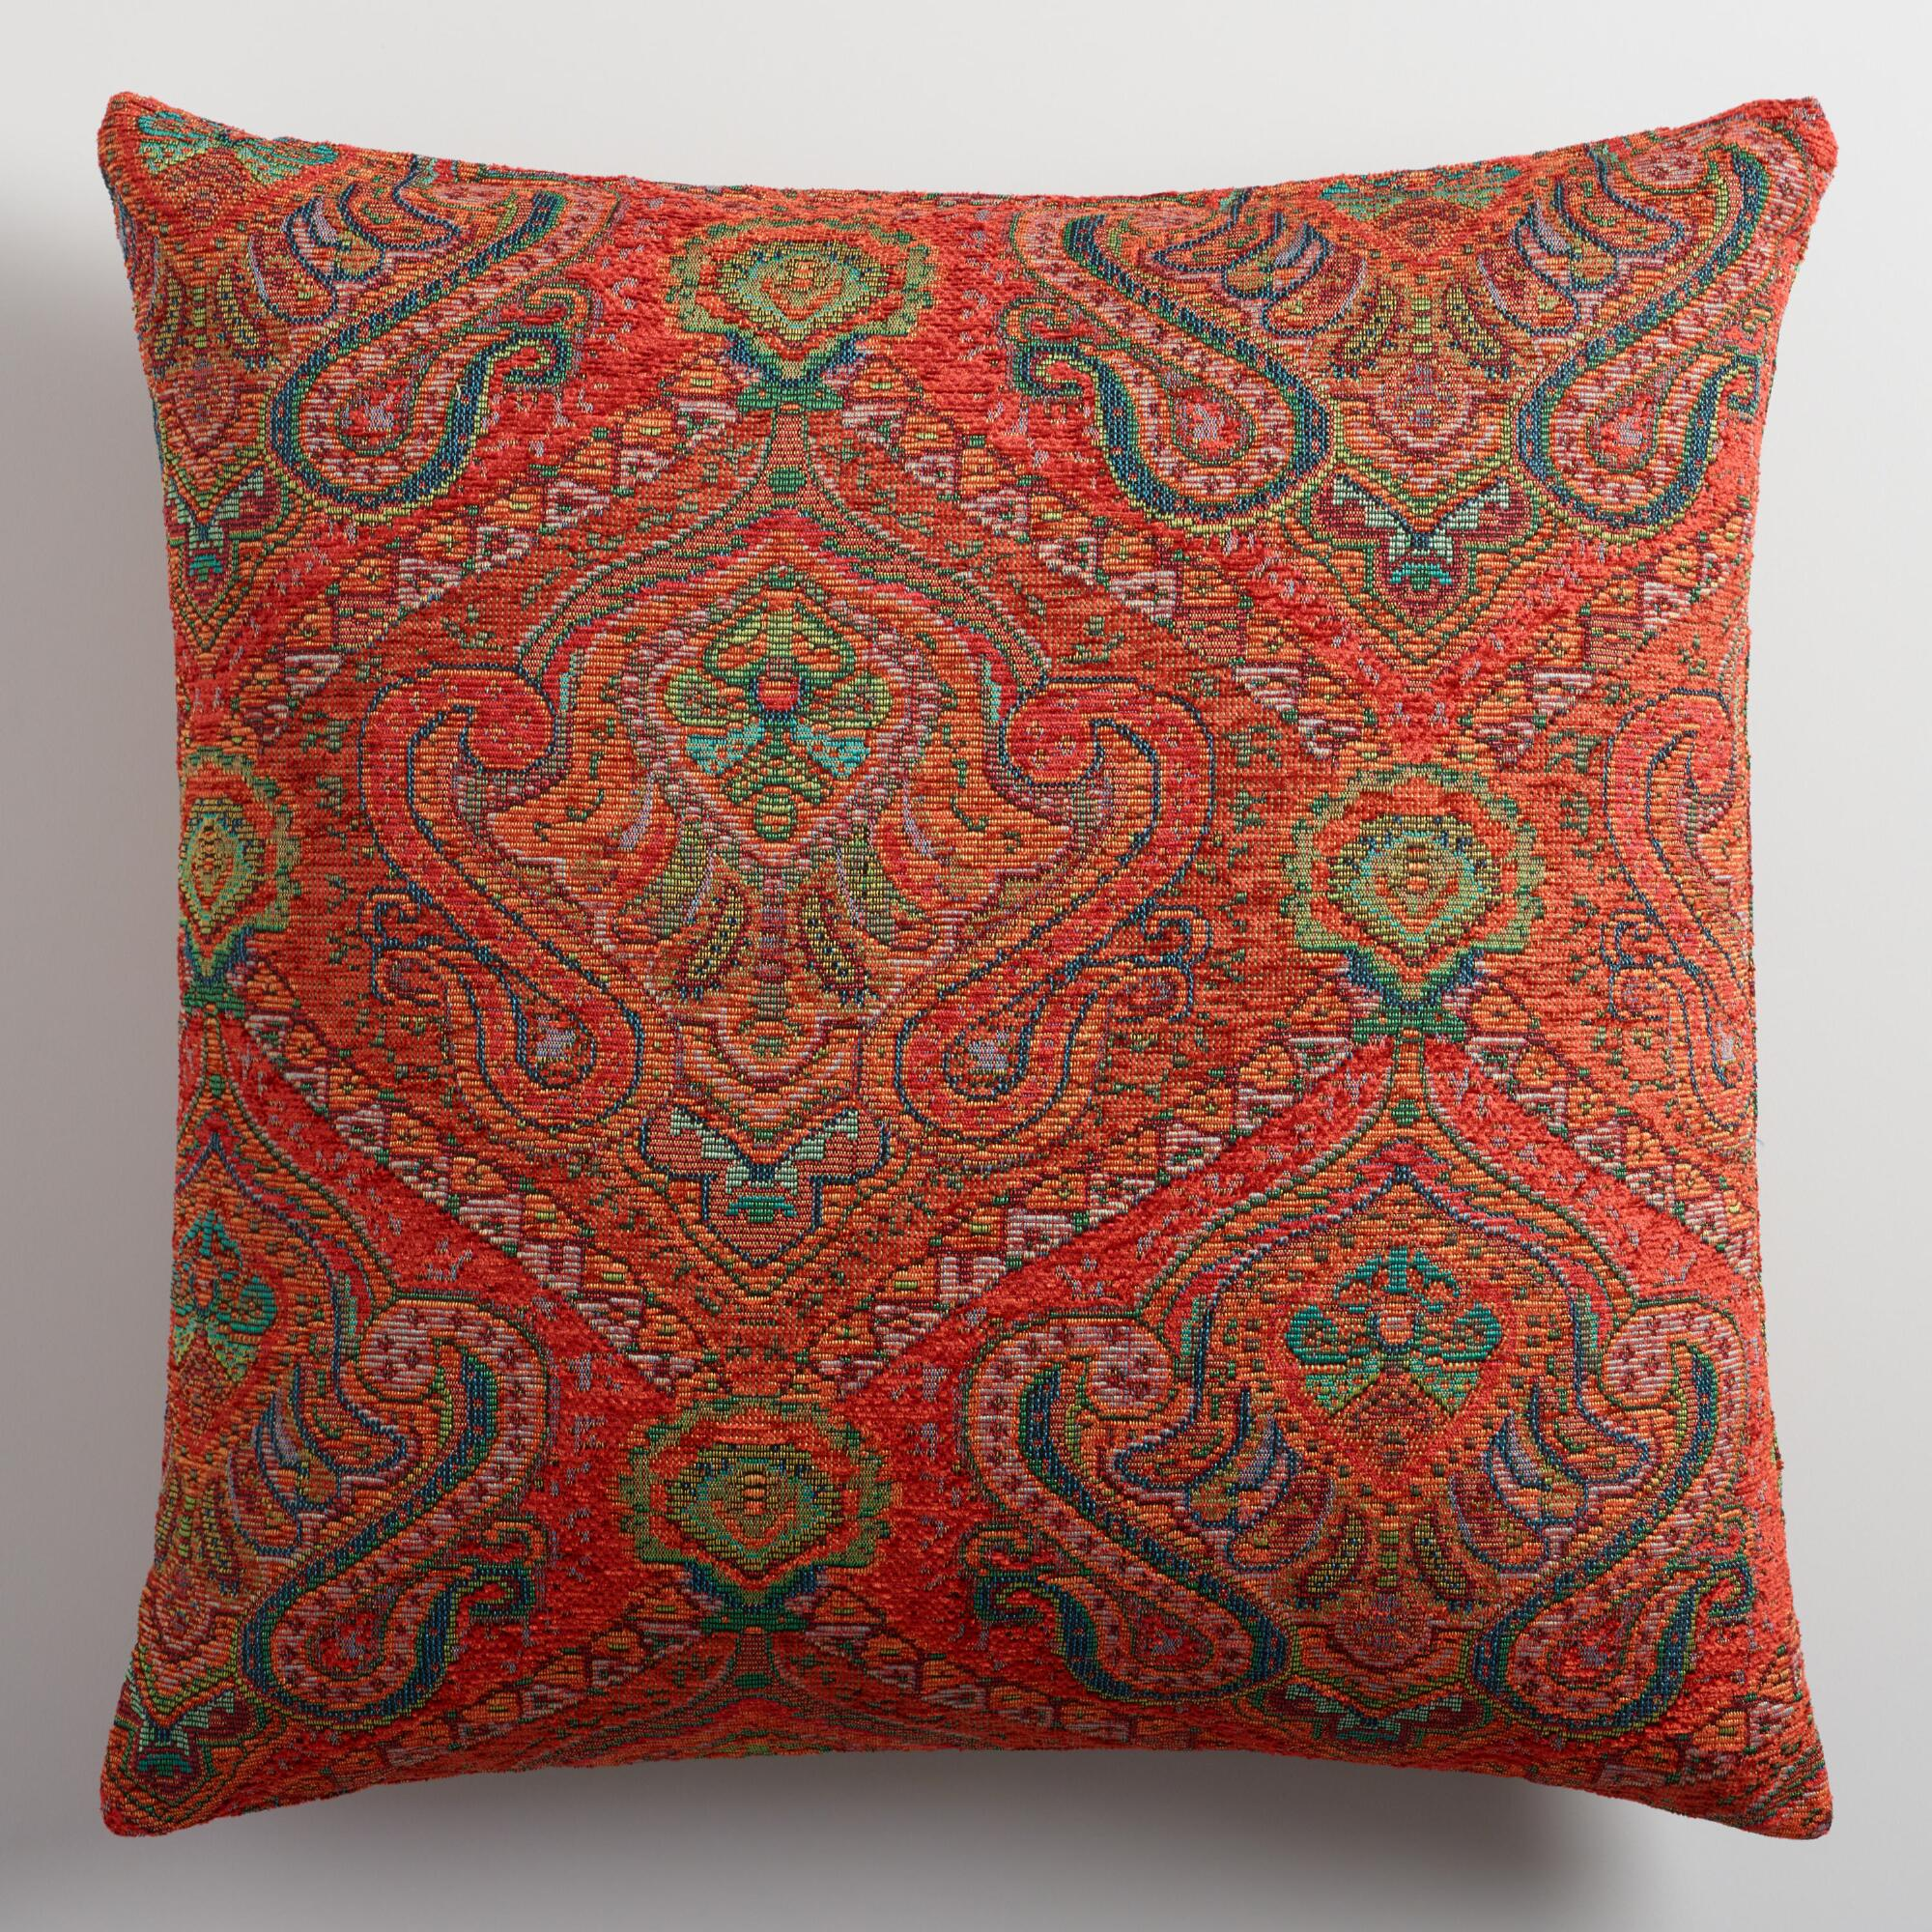 Throw Pillows With Orange : Orange Jacquard Throw Pillow World Market